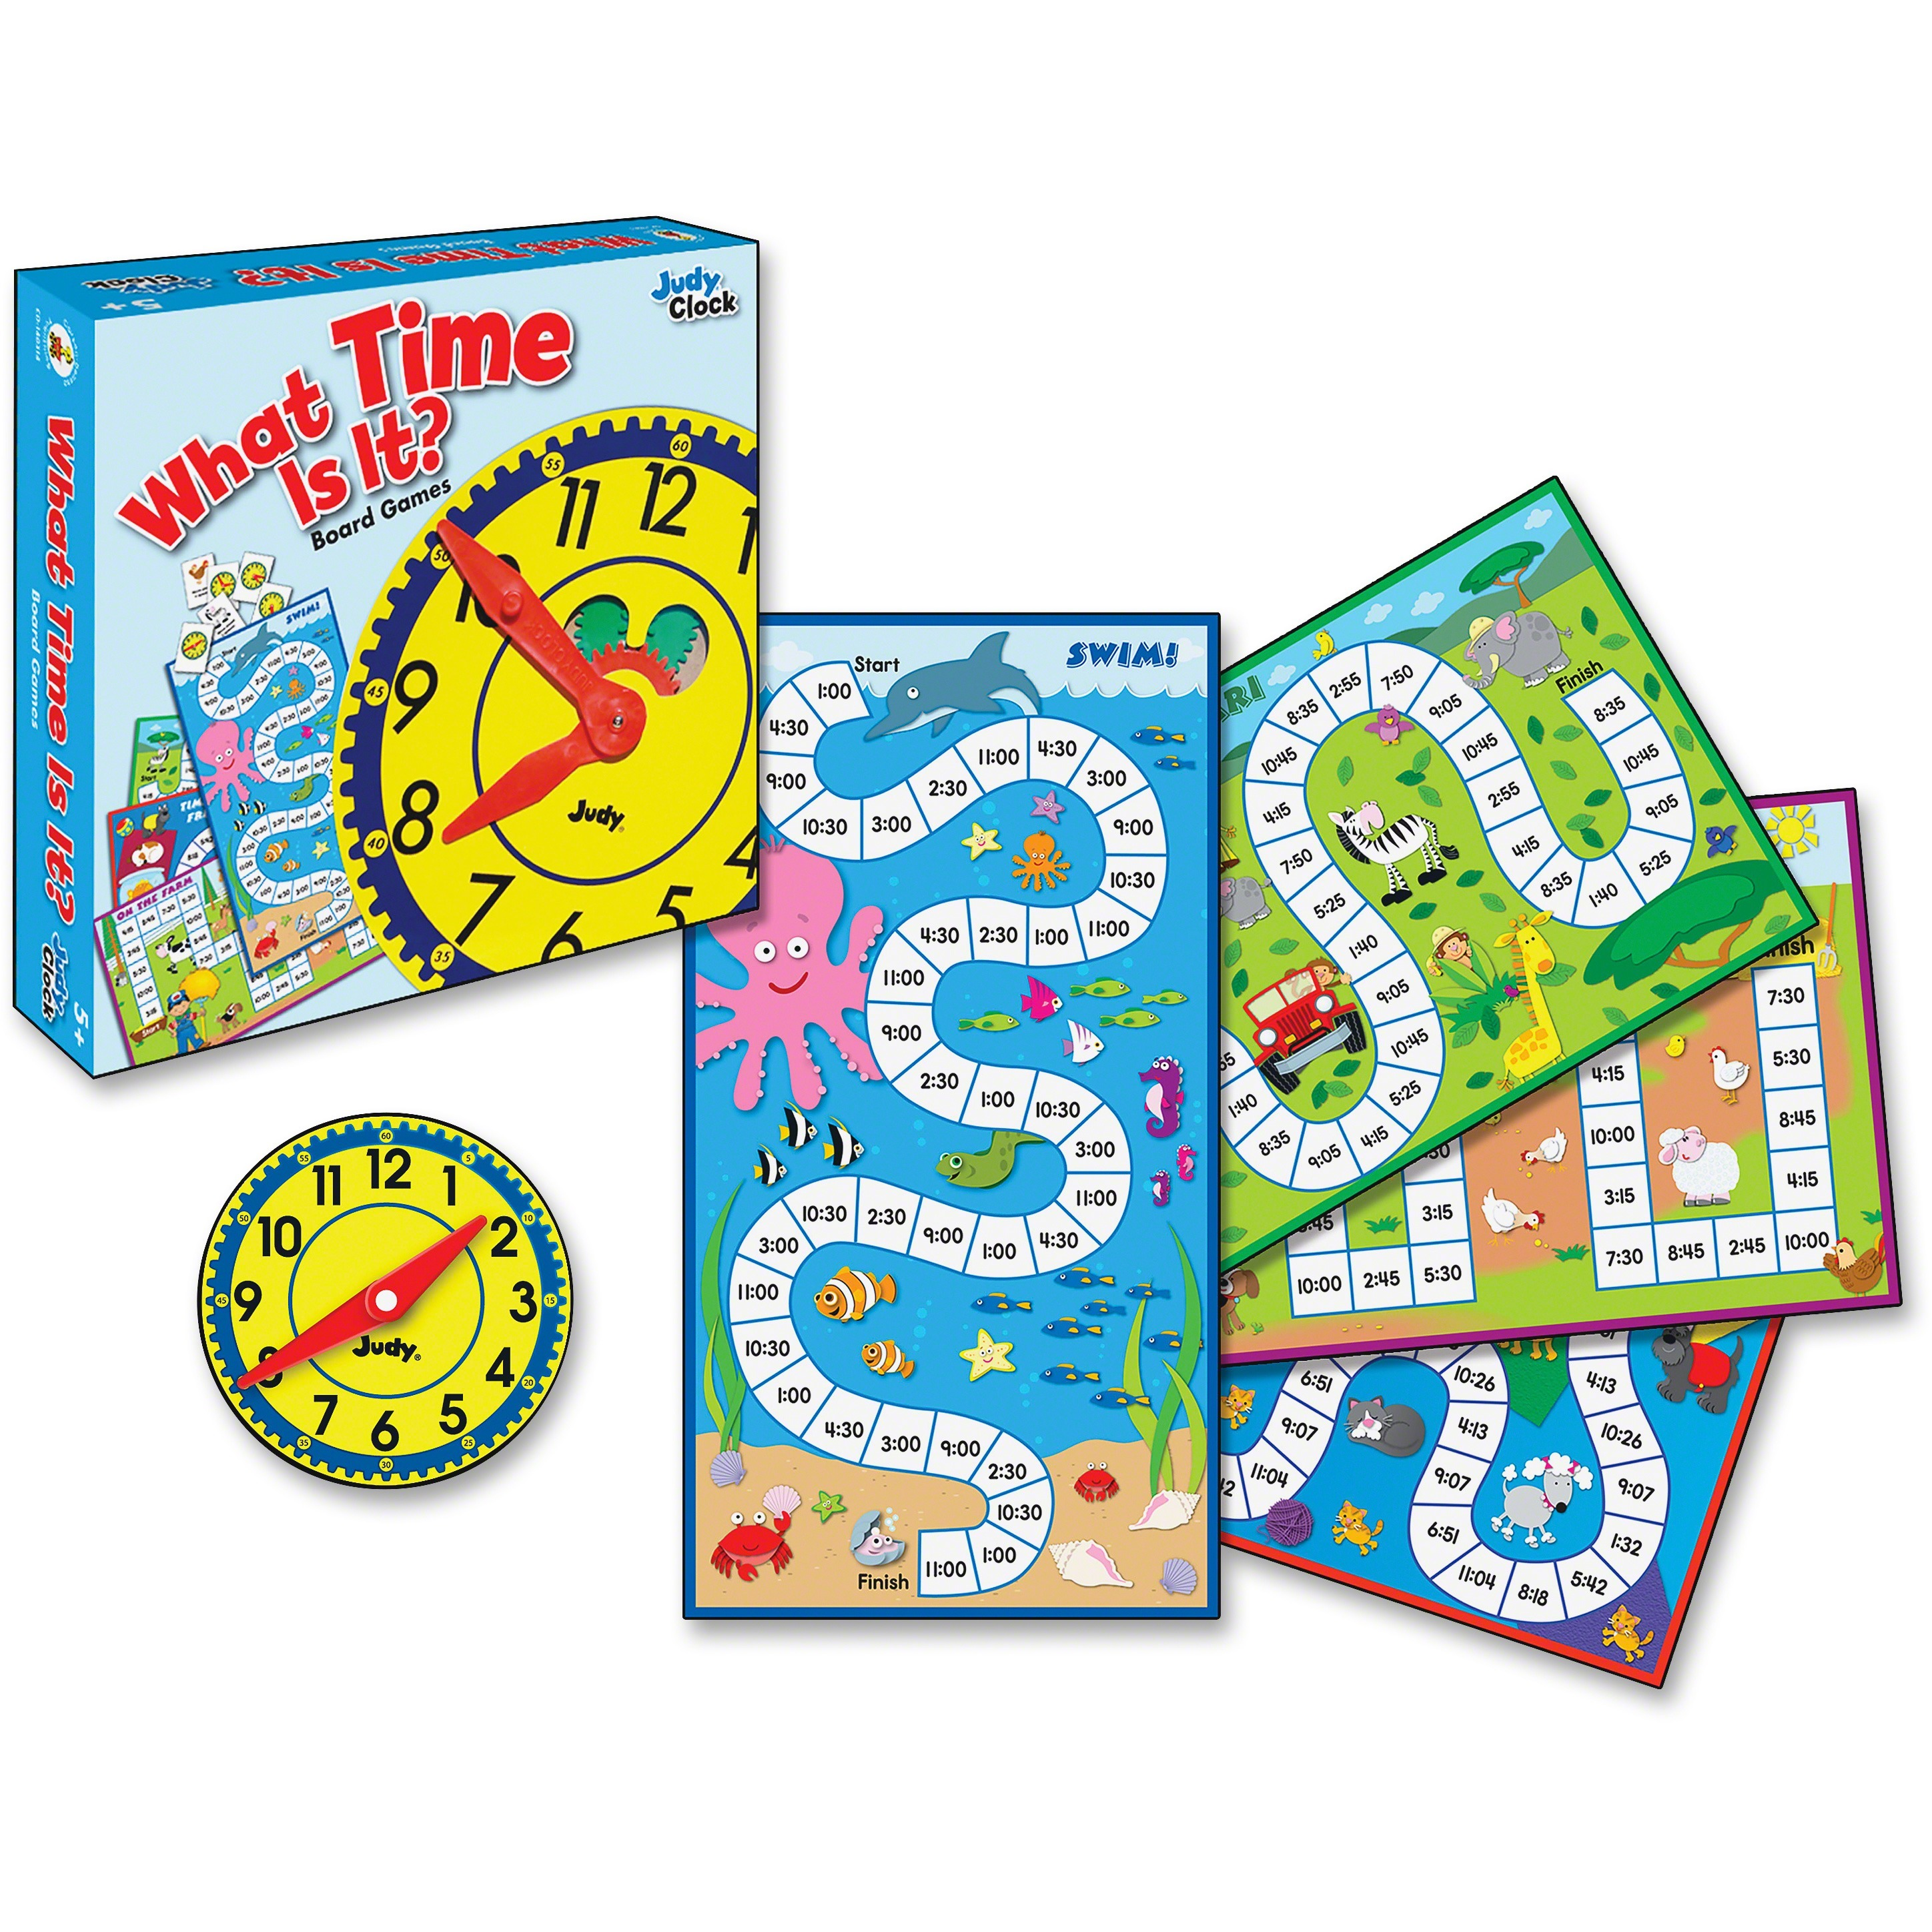 Carson-Dellosa, CDP140314, Grades K-3 What Time Is It Board Game, 1 Each